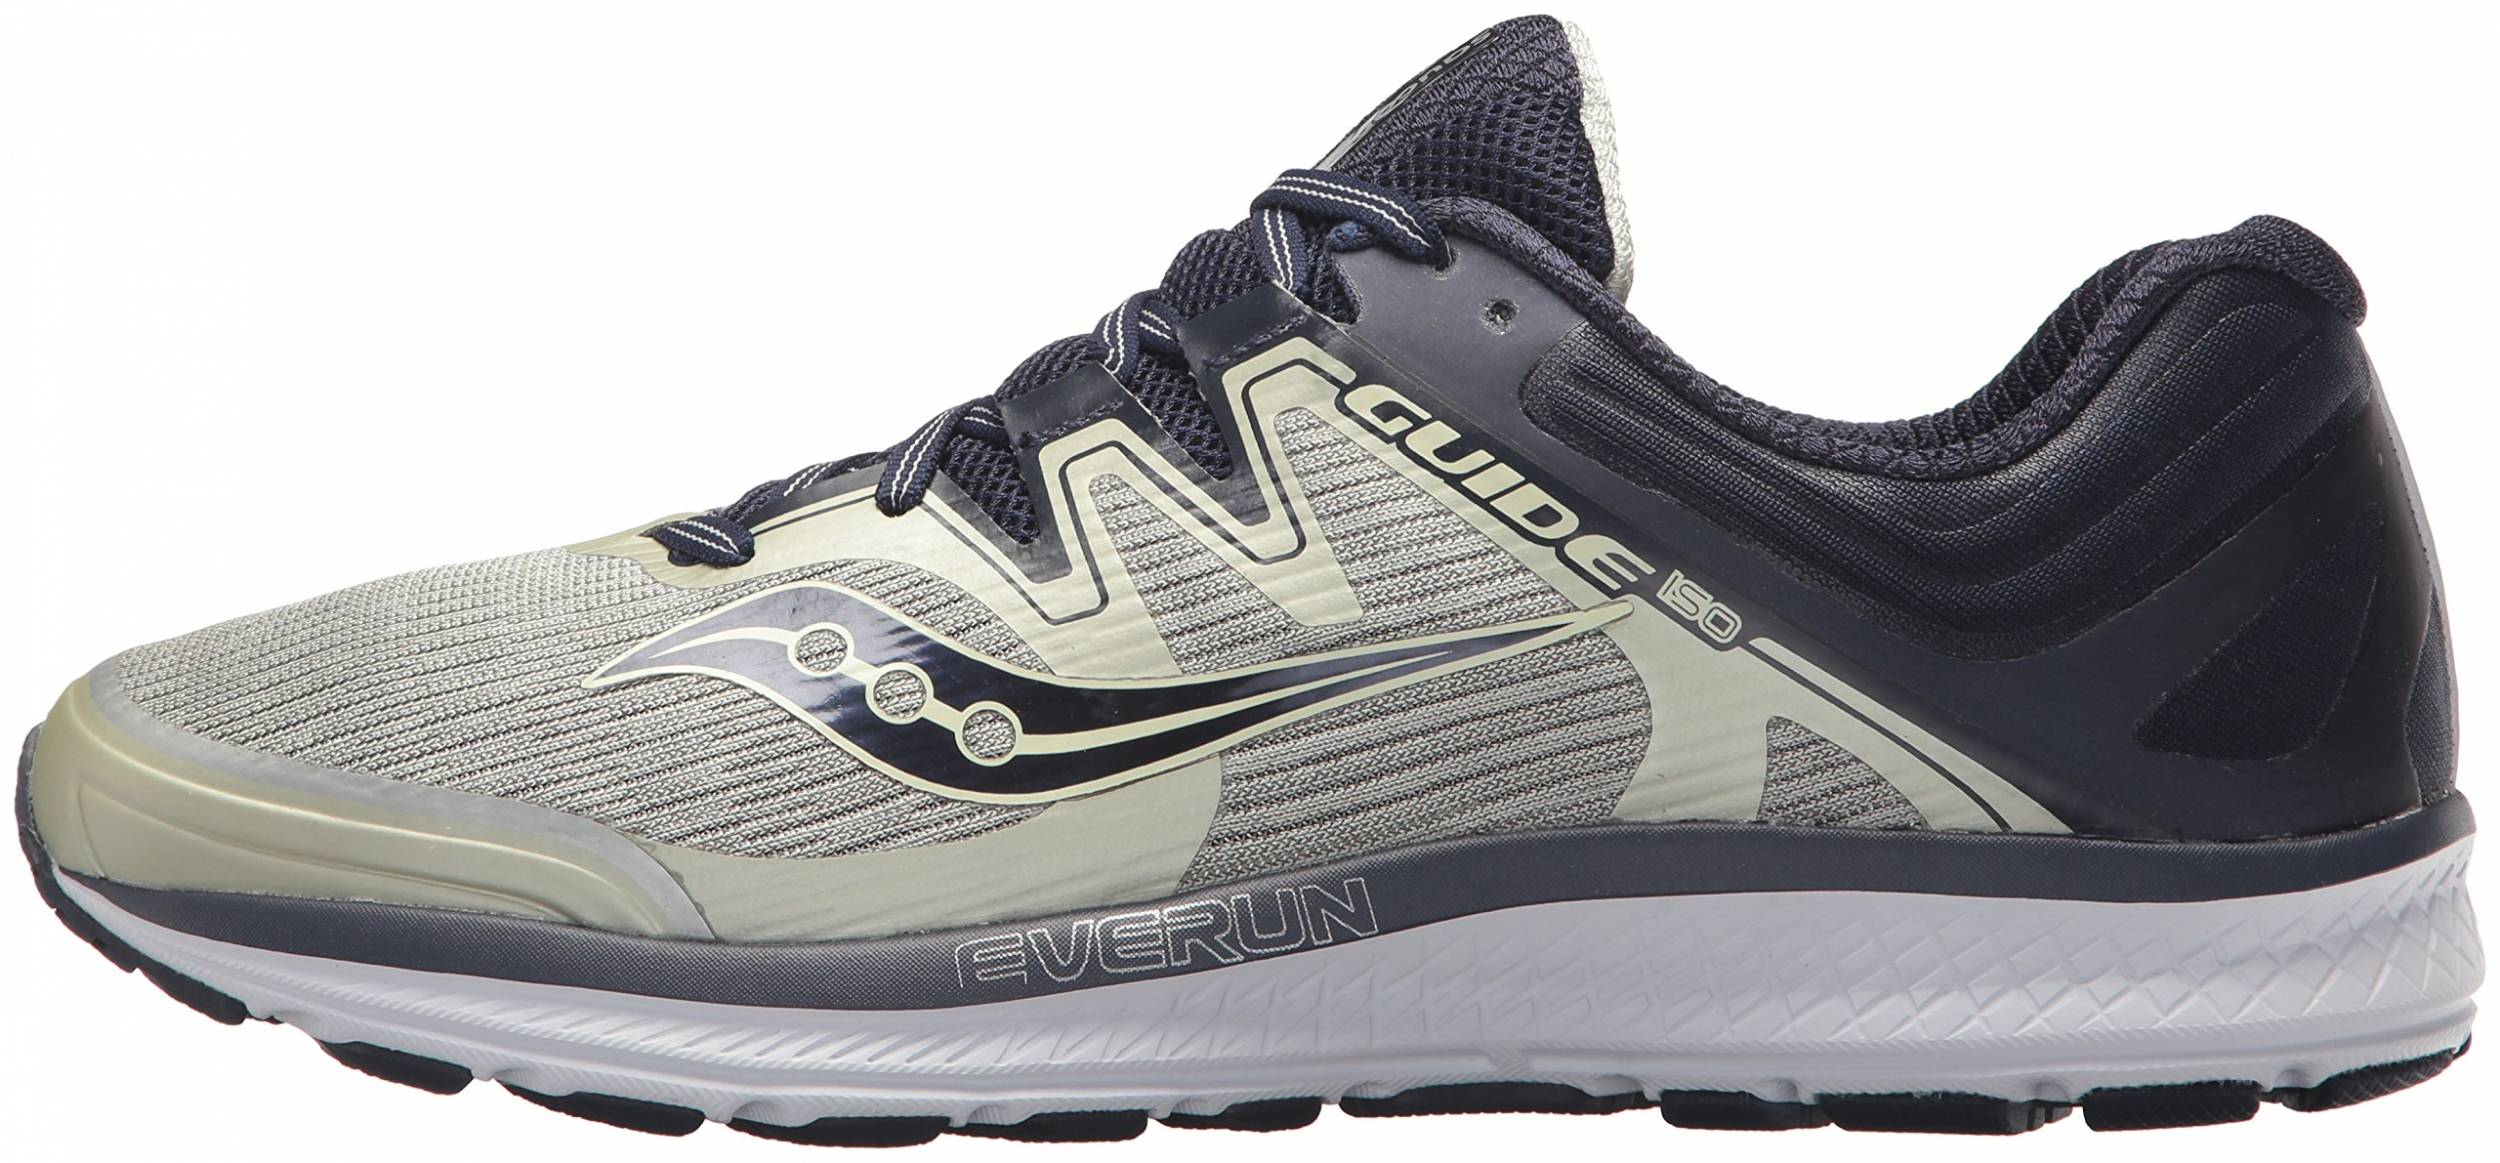 Only $73 + Review of Saucony Guide ISO | RunRepeat